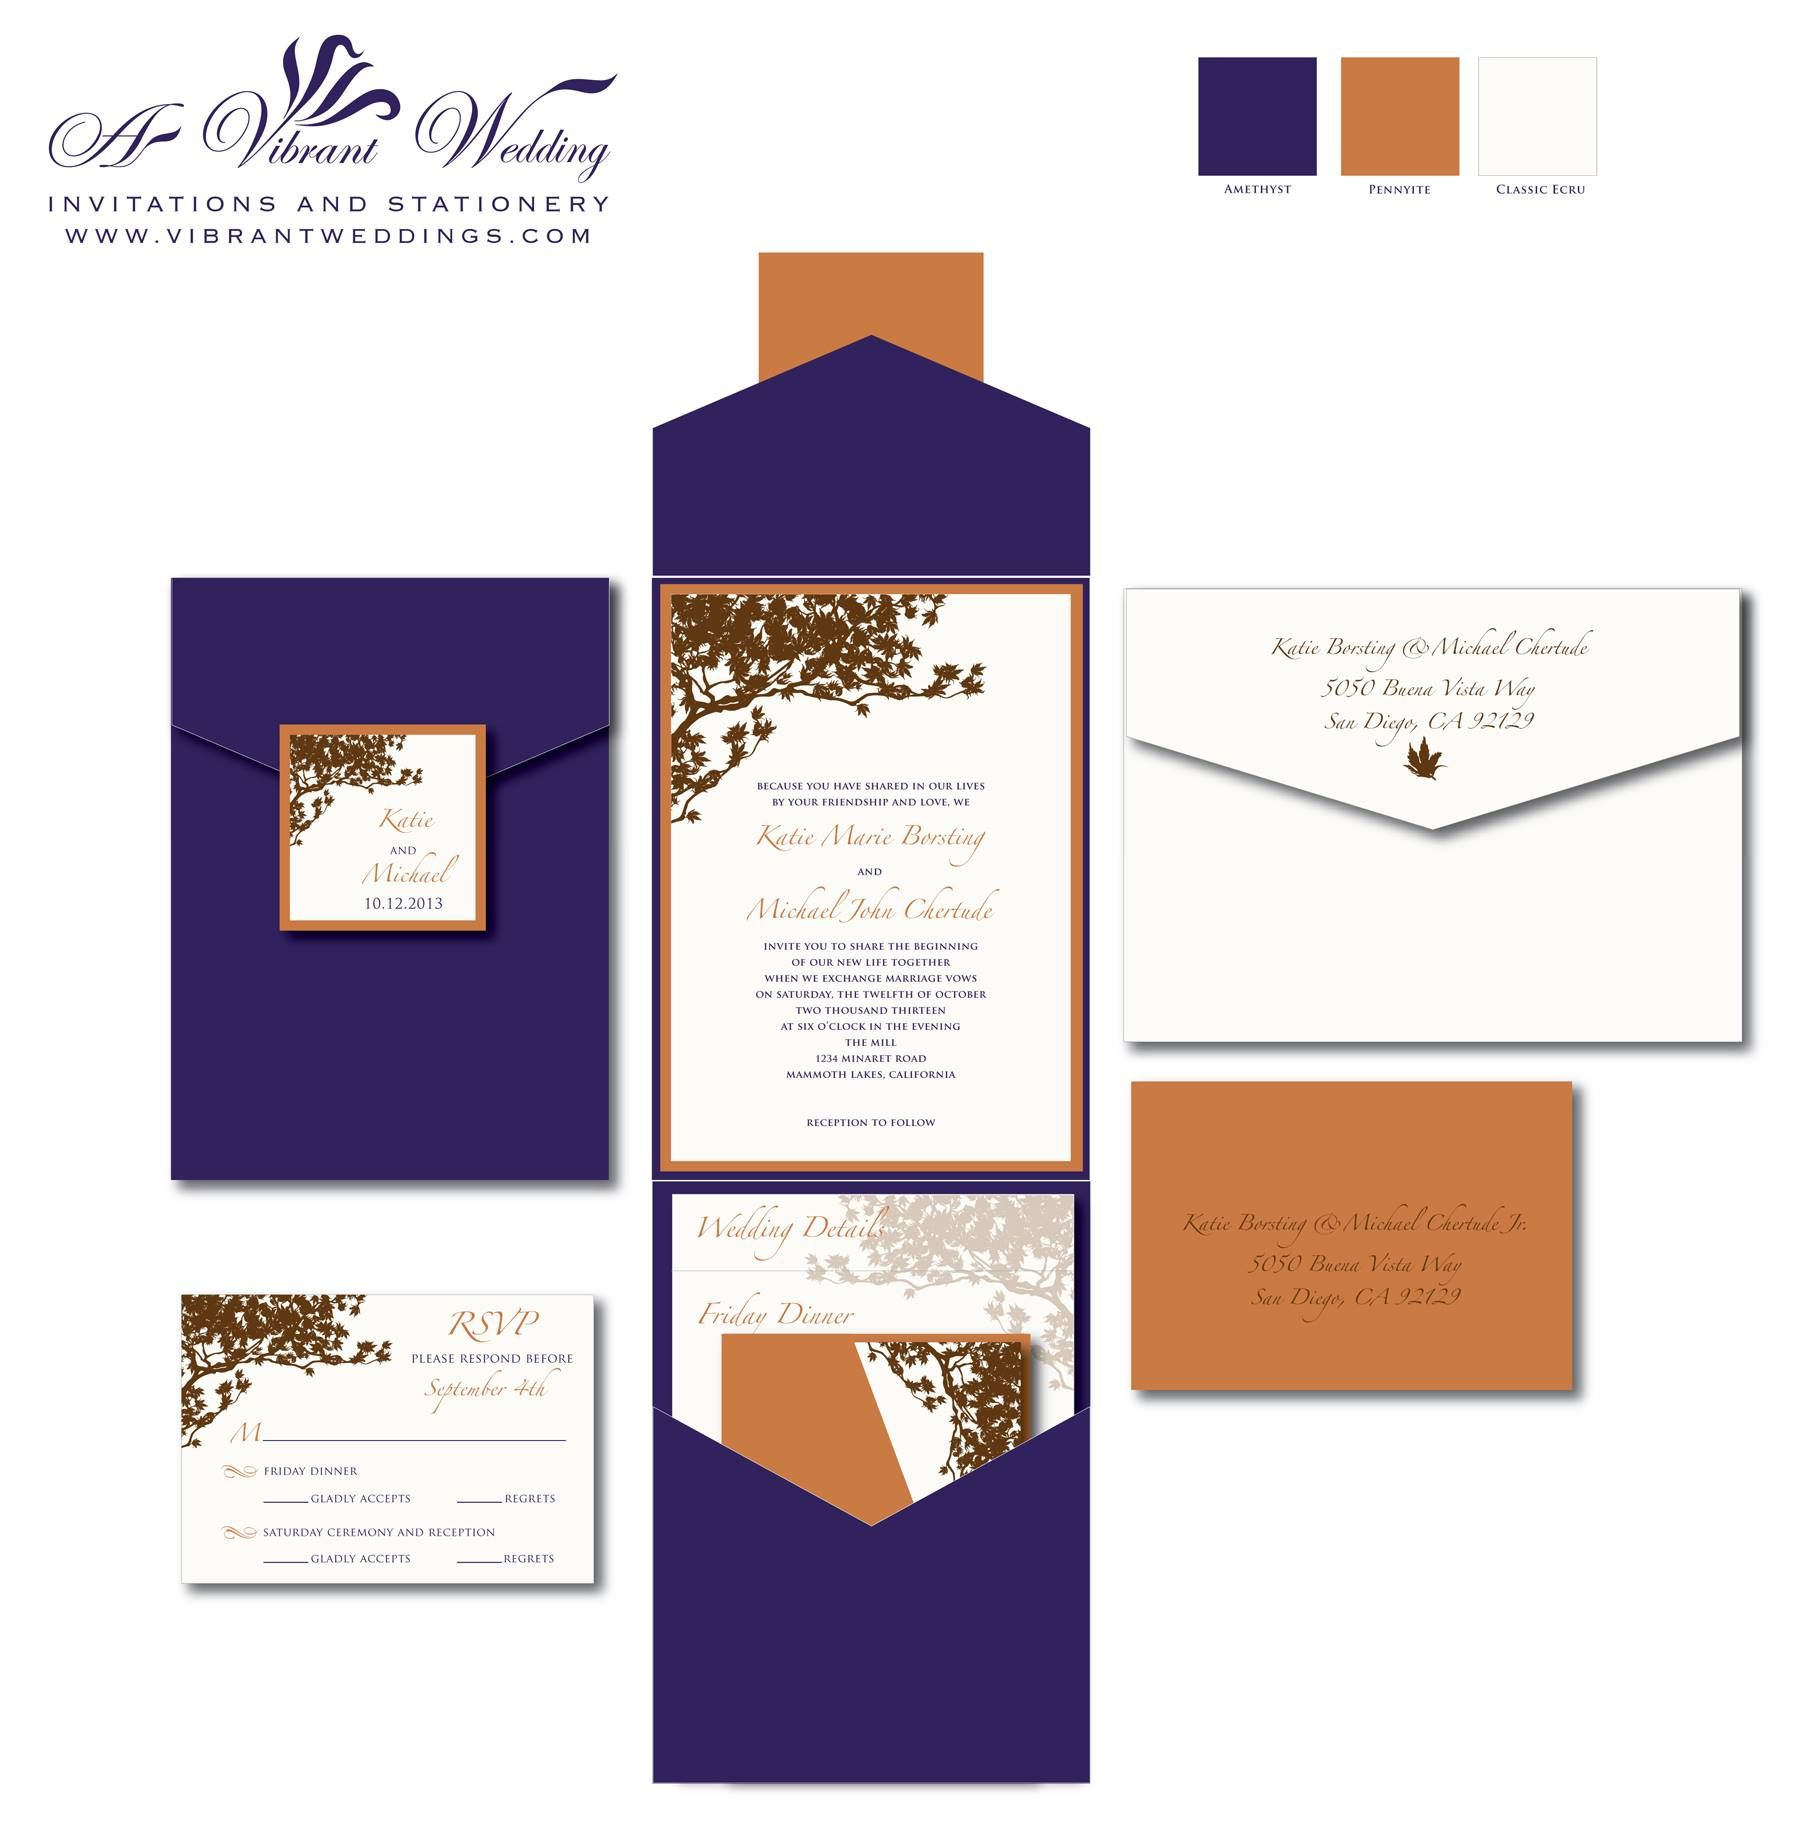 Purple And Orange Wedding Invitation Pocketfold Fall Theme With Tree Branch Design